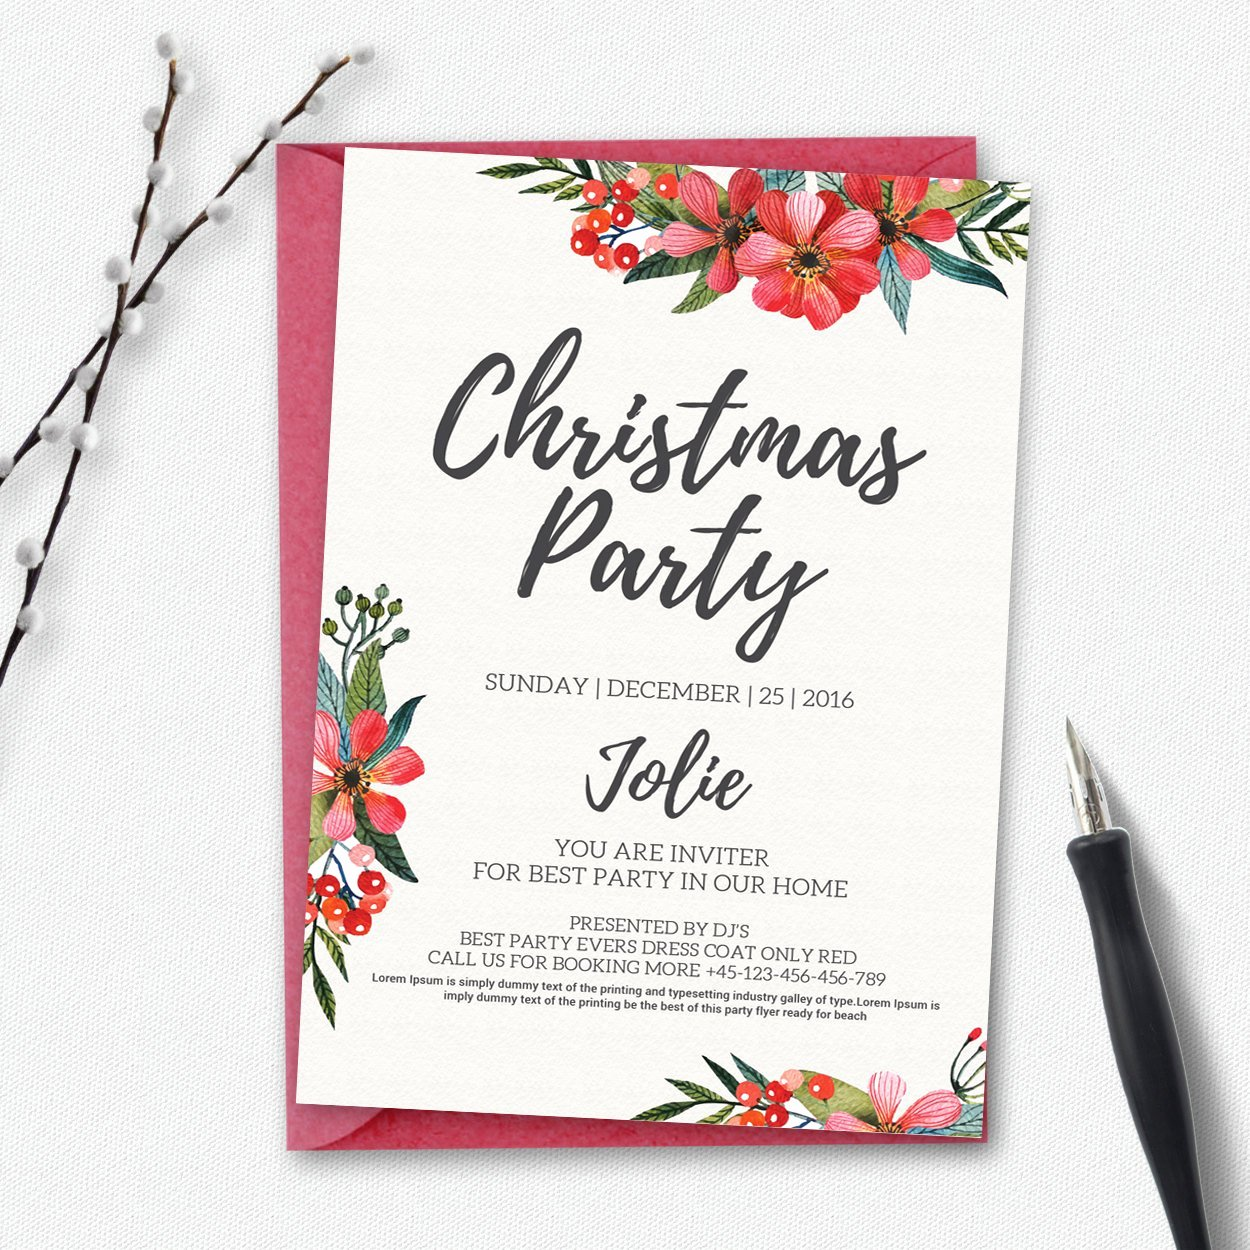 Christmas Party Invite Template New Holiday Party Invitation Template Invitation Templates